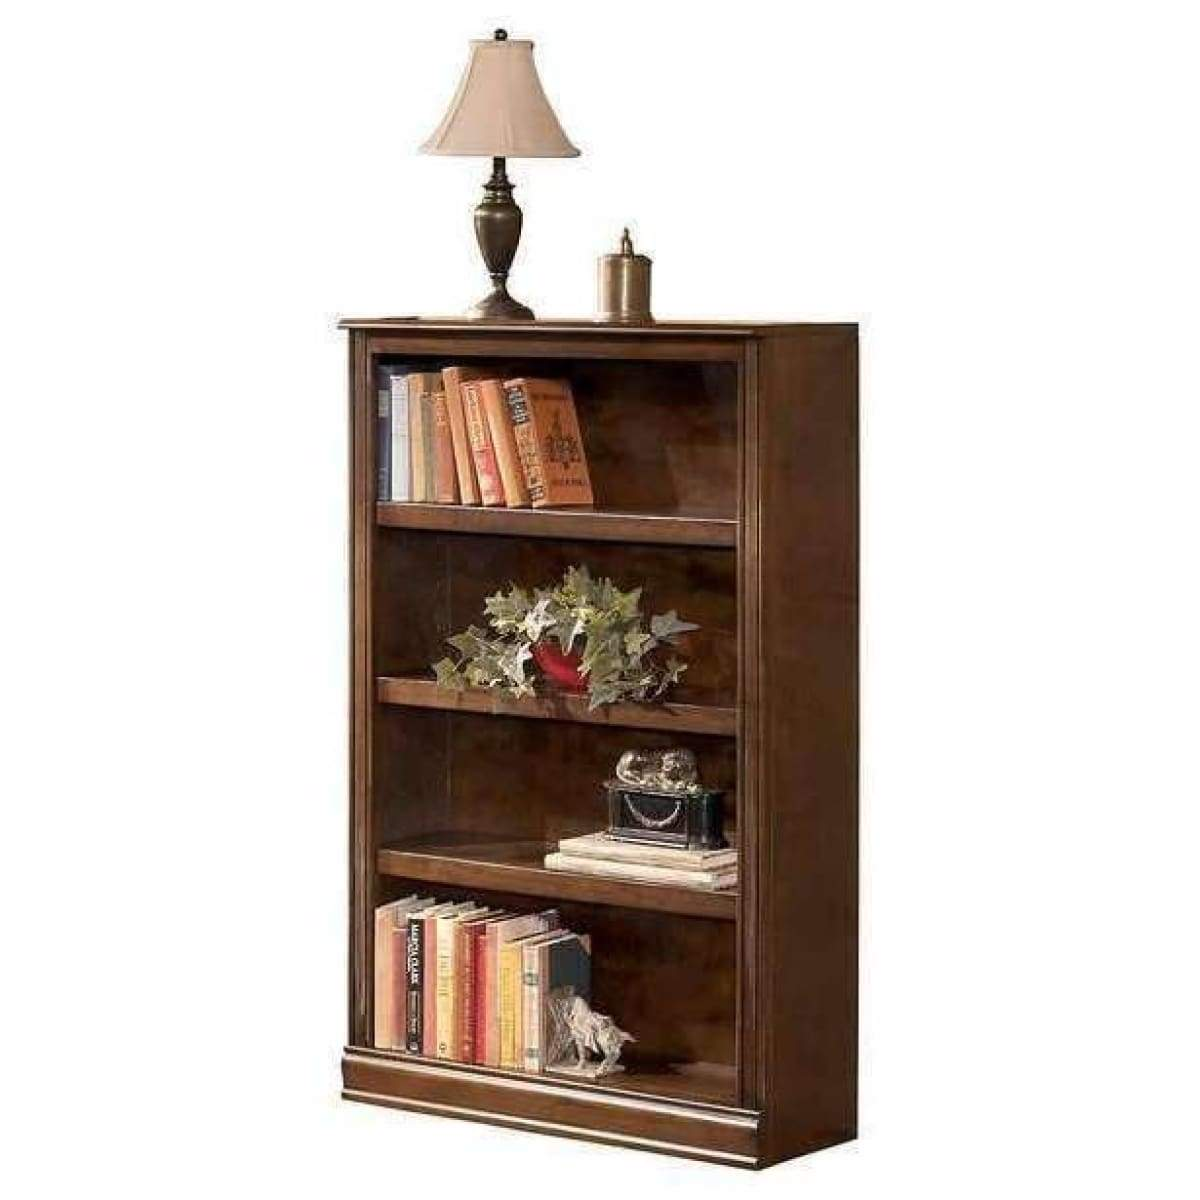 Hamlyn Medium Bookcase - Shelving